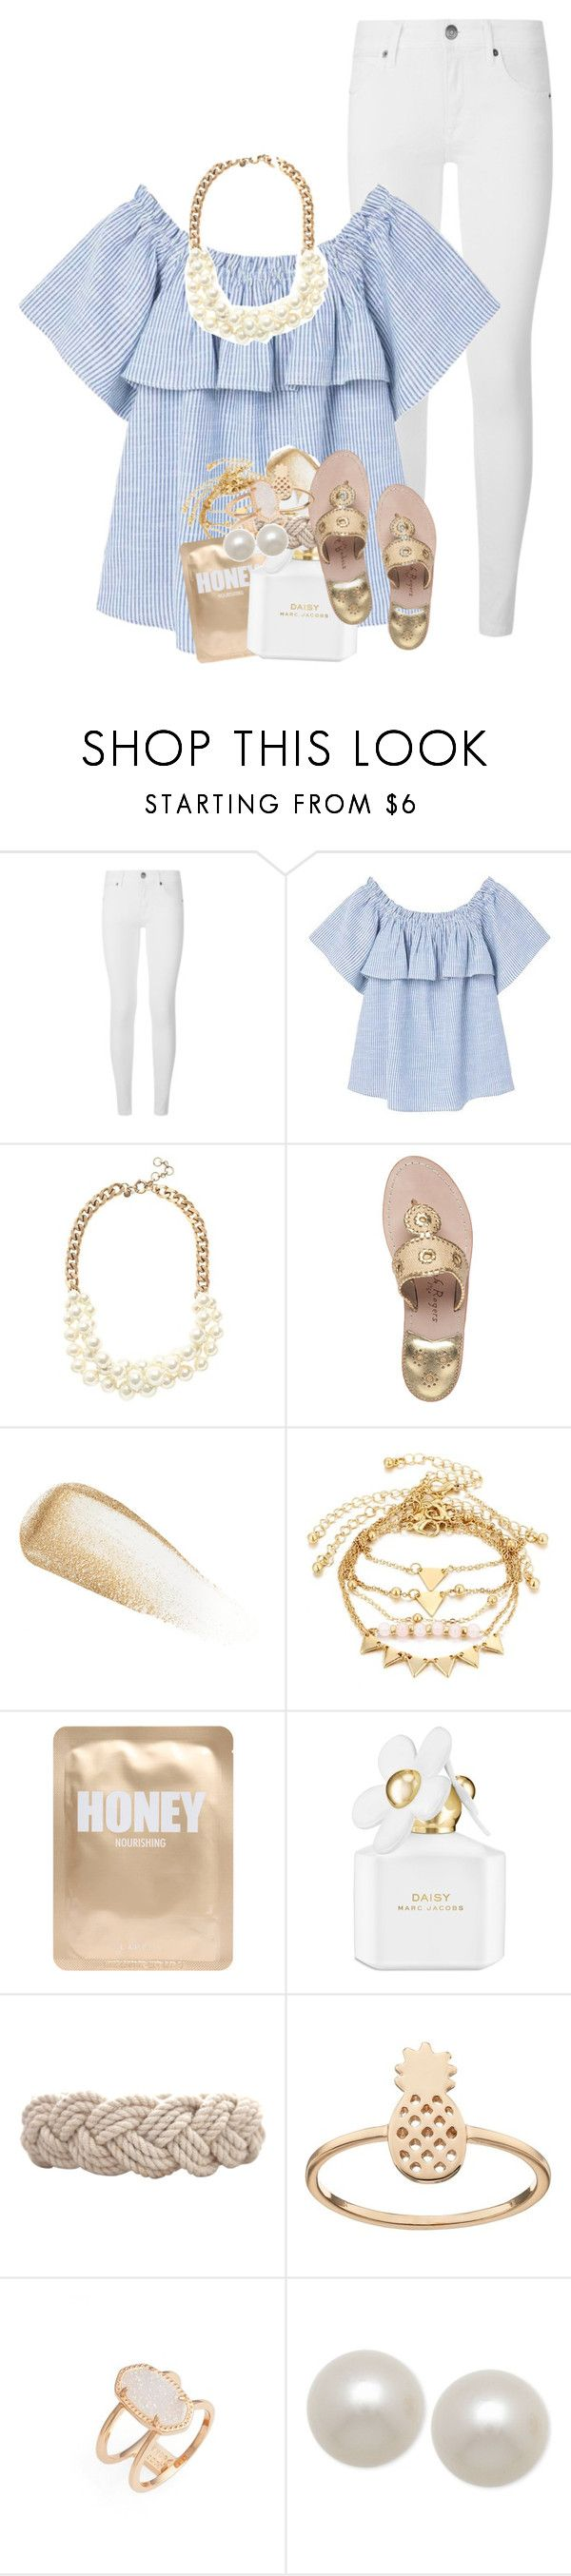 """golden like the point of your intentions."" by emilyandella ❤ liked on Polyvore featuring Burberry, MANGO, J.Crew, Jack Rogers, Yves Saint Laurent, Lapcos, Marc Jacobs, Swell, LC Lauren Conrad and Kendra Scott"